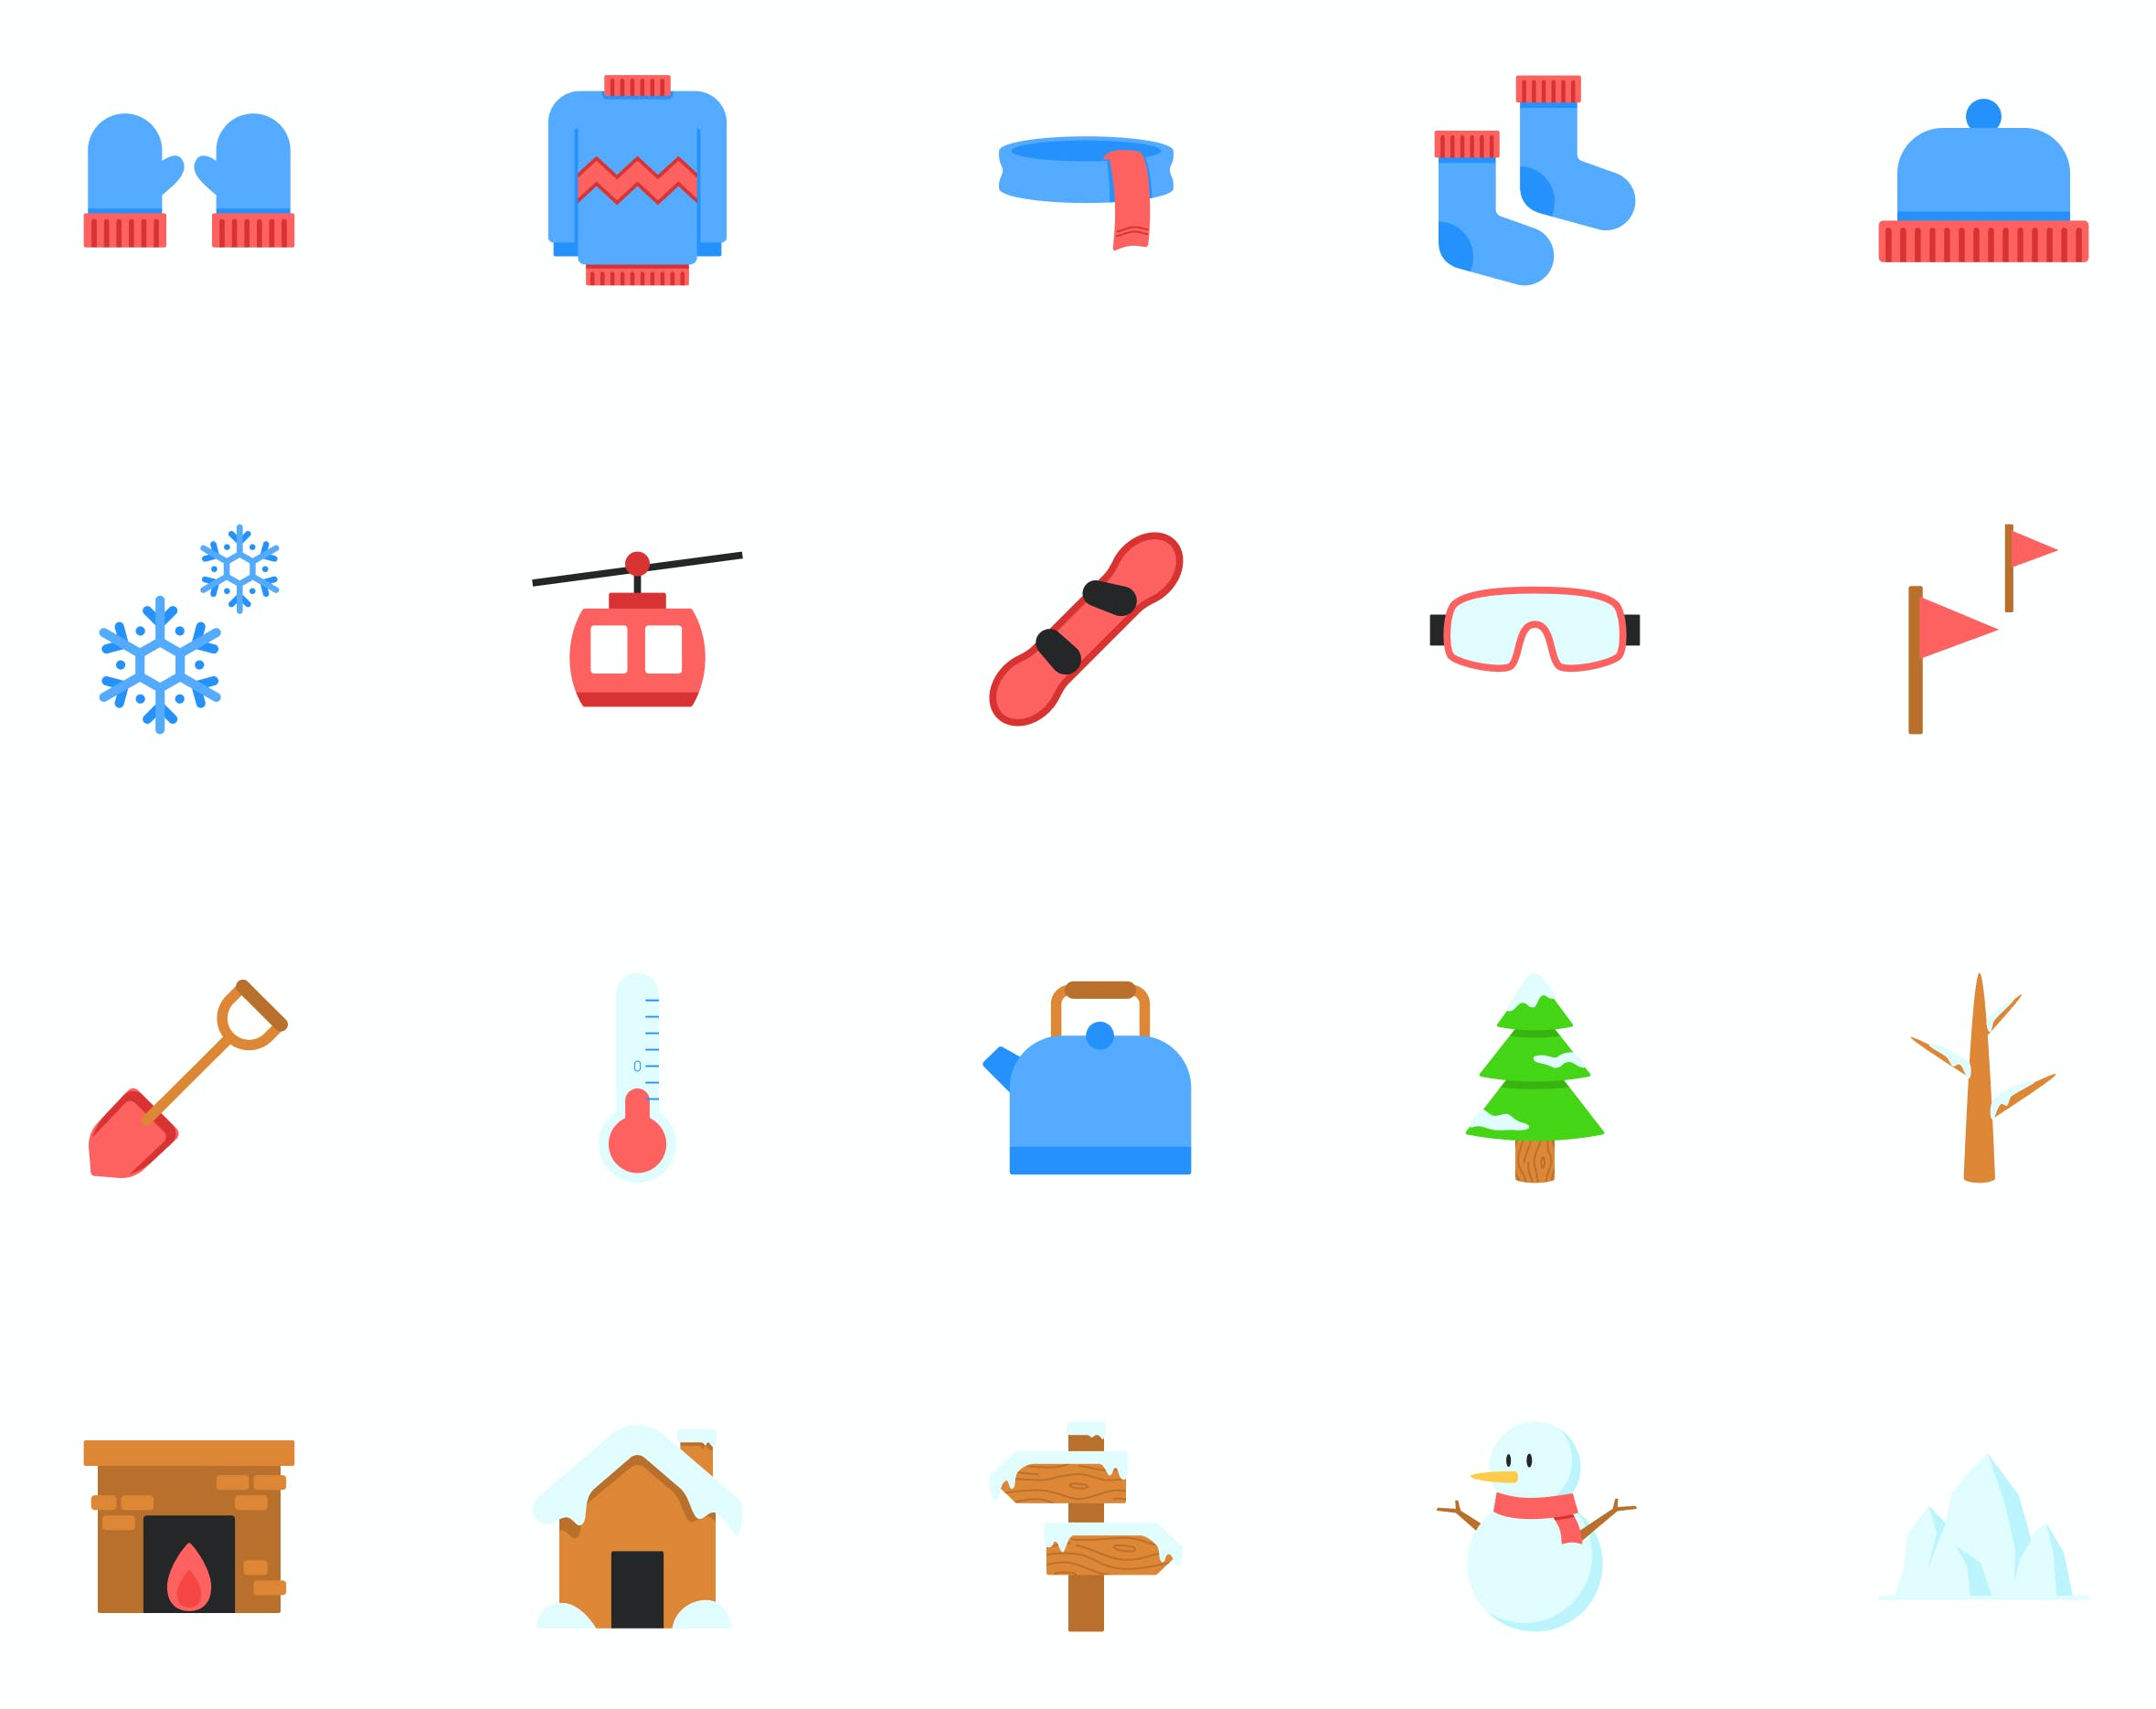 25 flat icons representing items like mittens, snow, and a fireplace.